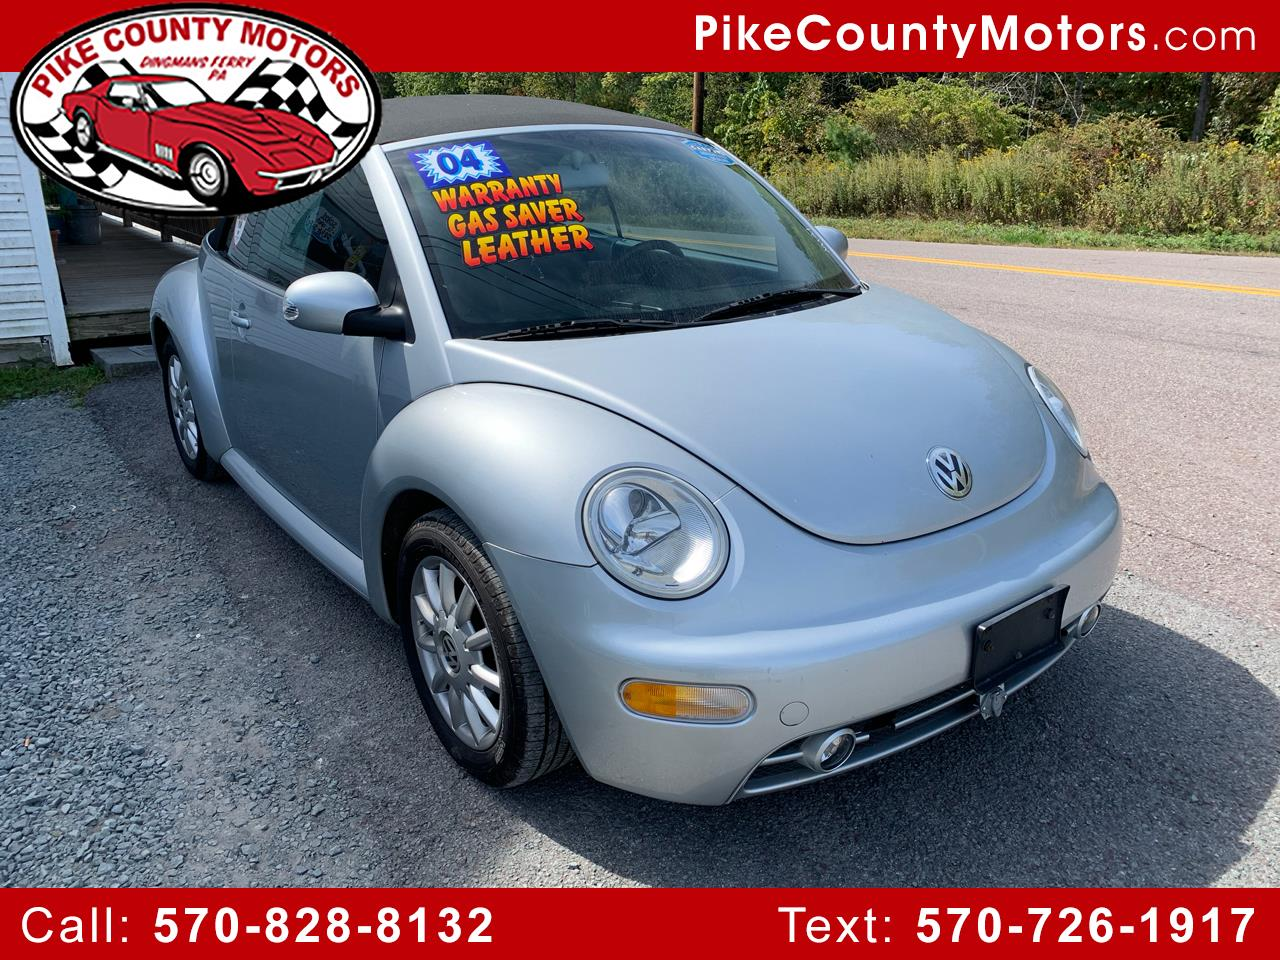 2004 Volkswagen New Beetle Convertible 2dr Convertible GLS Manual